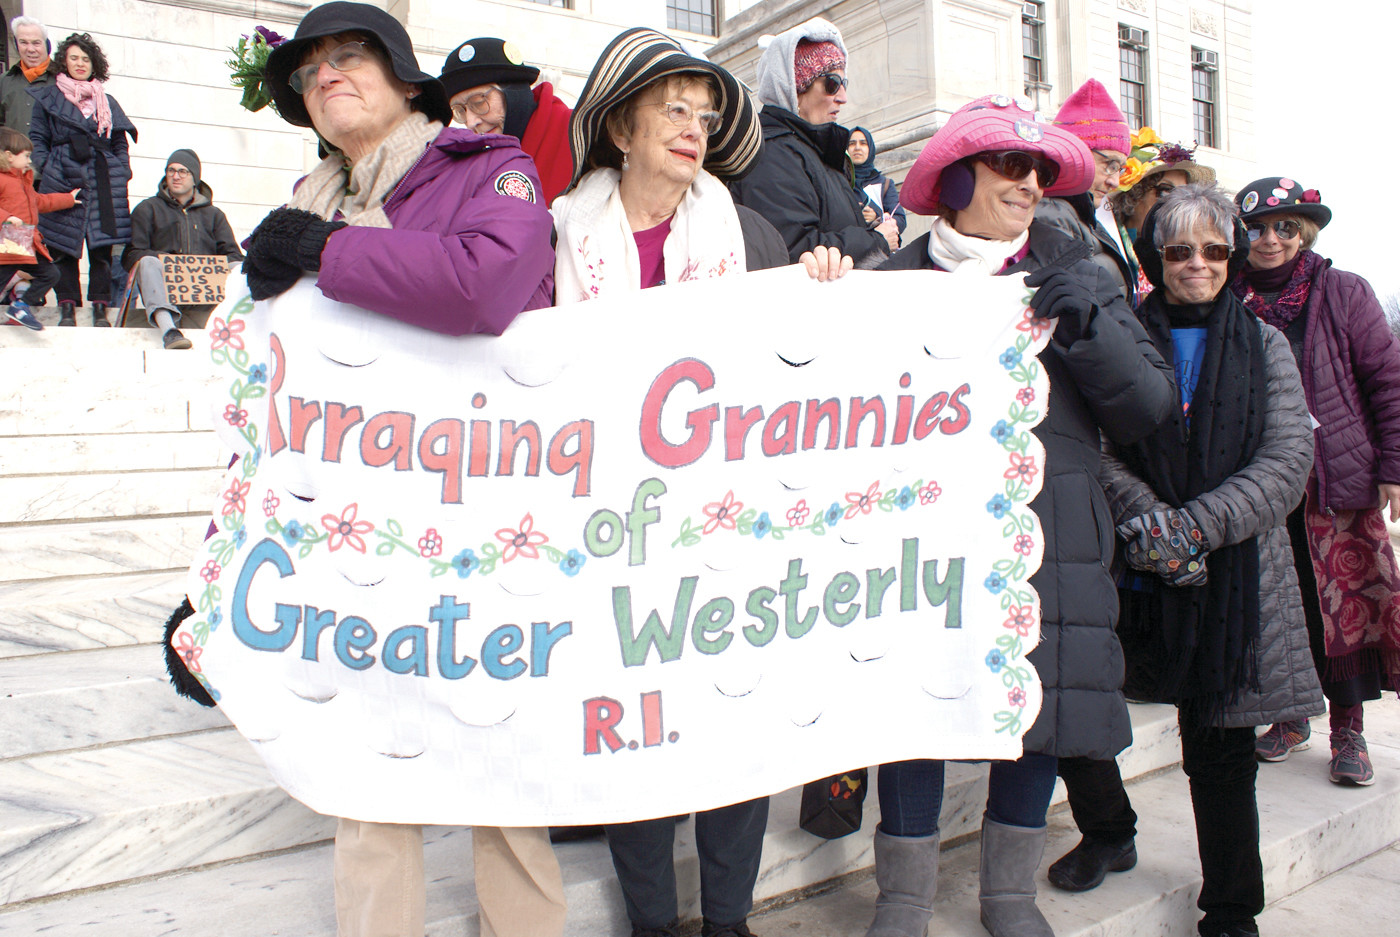 RAGGING GRANNIES: The Raging Grannies of Greater Westerly came out in force at the Women' March RI Rally in support of the movement.